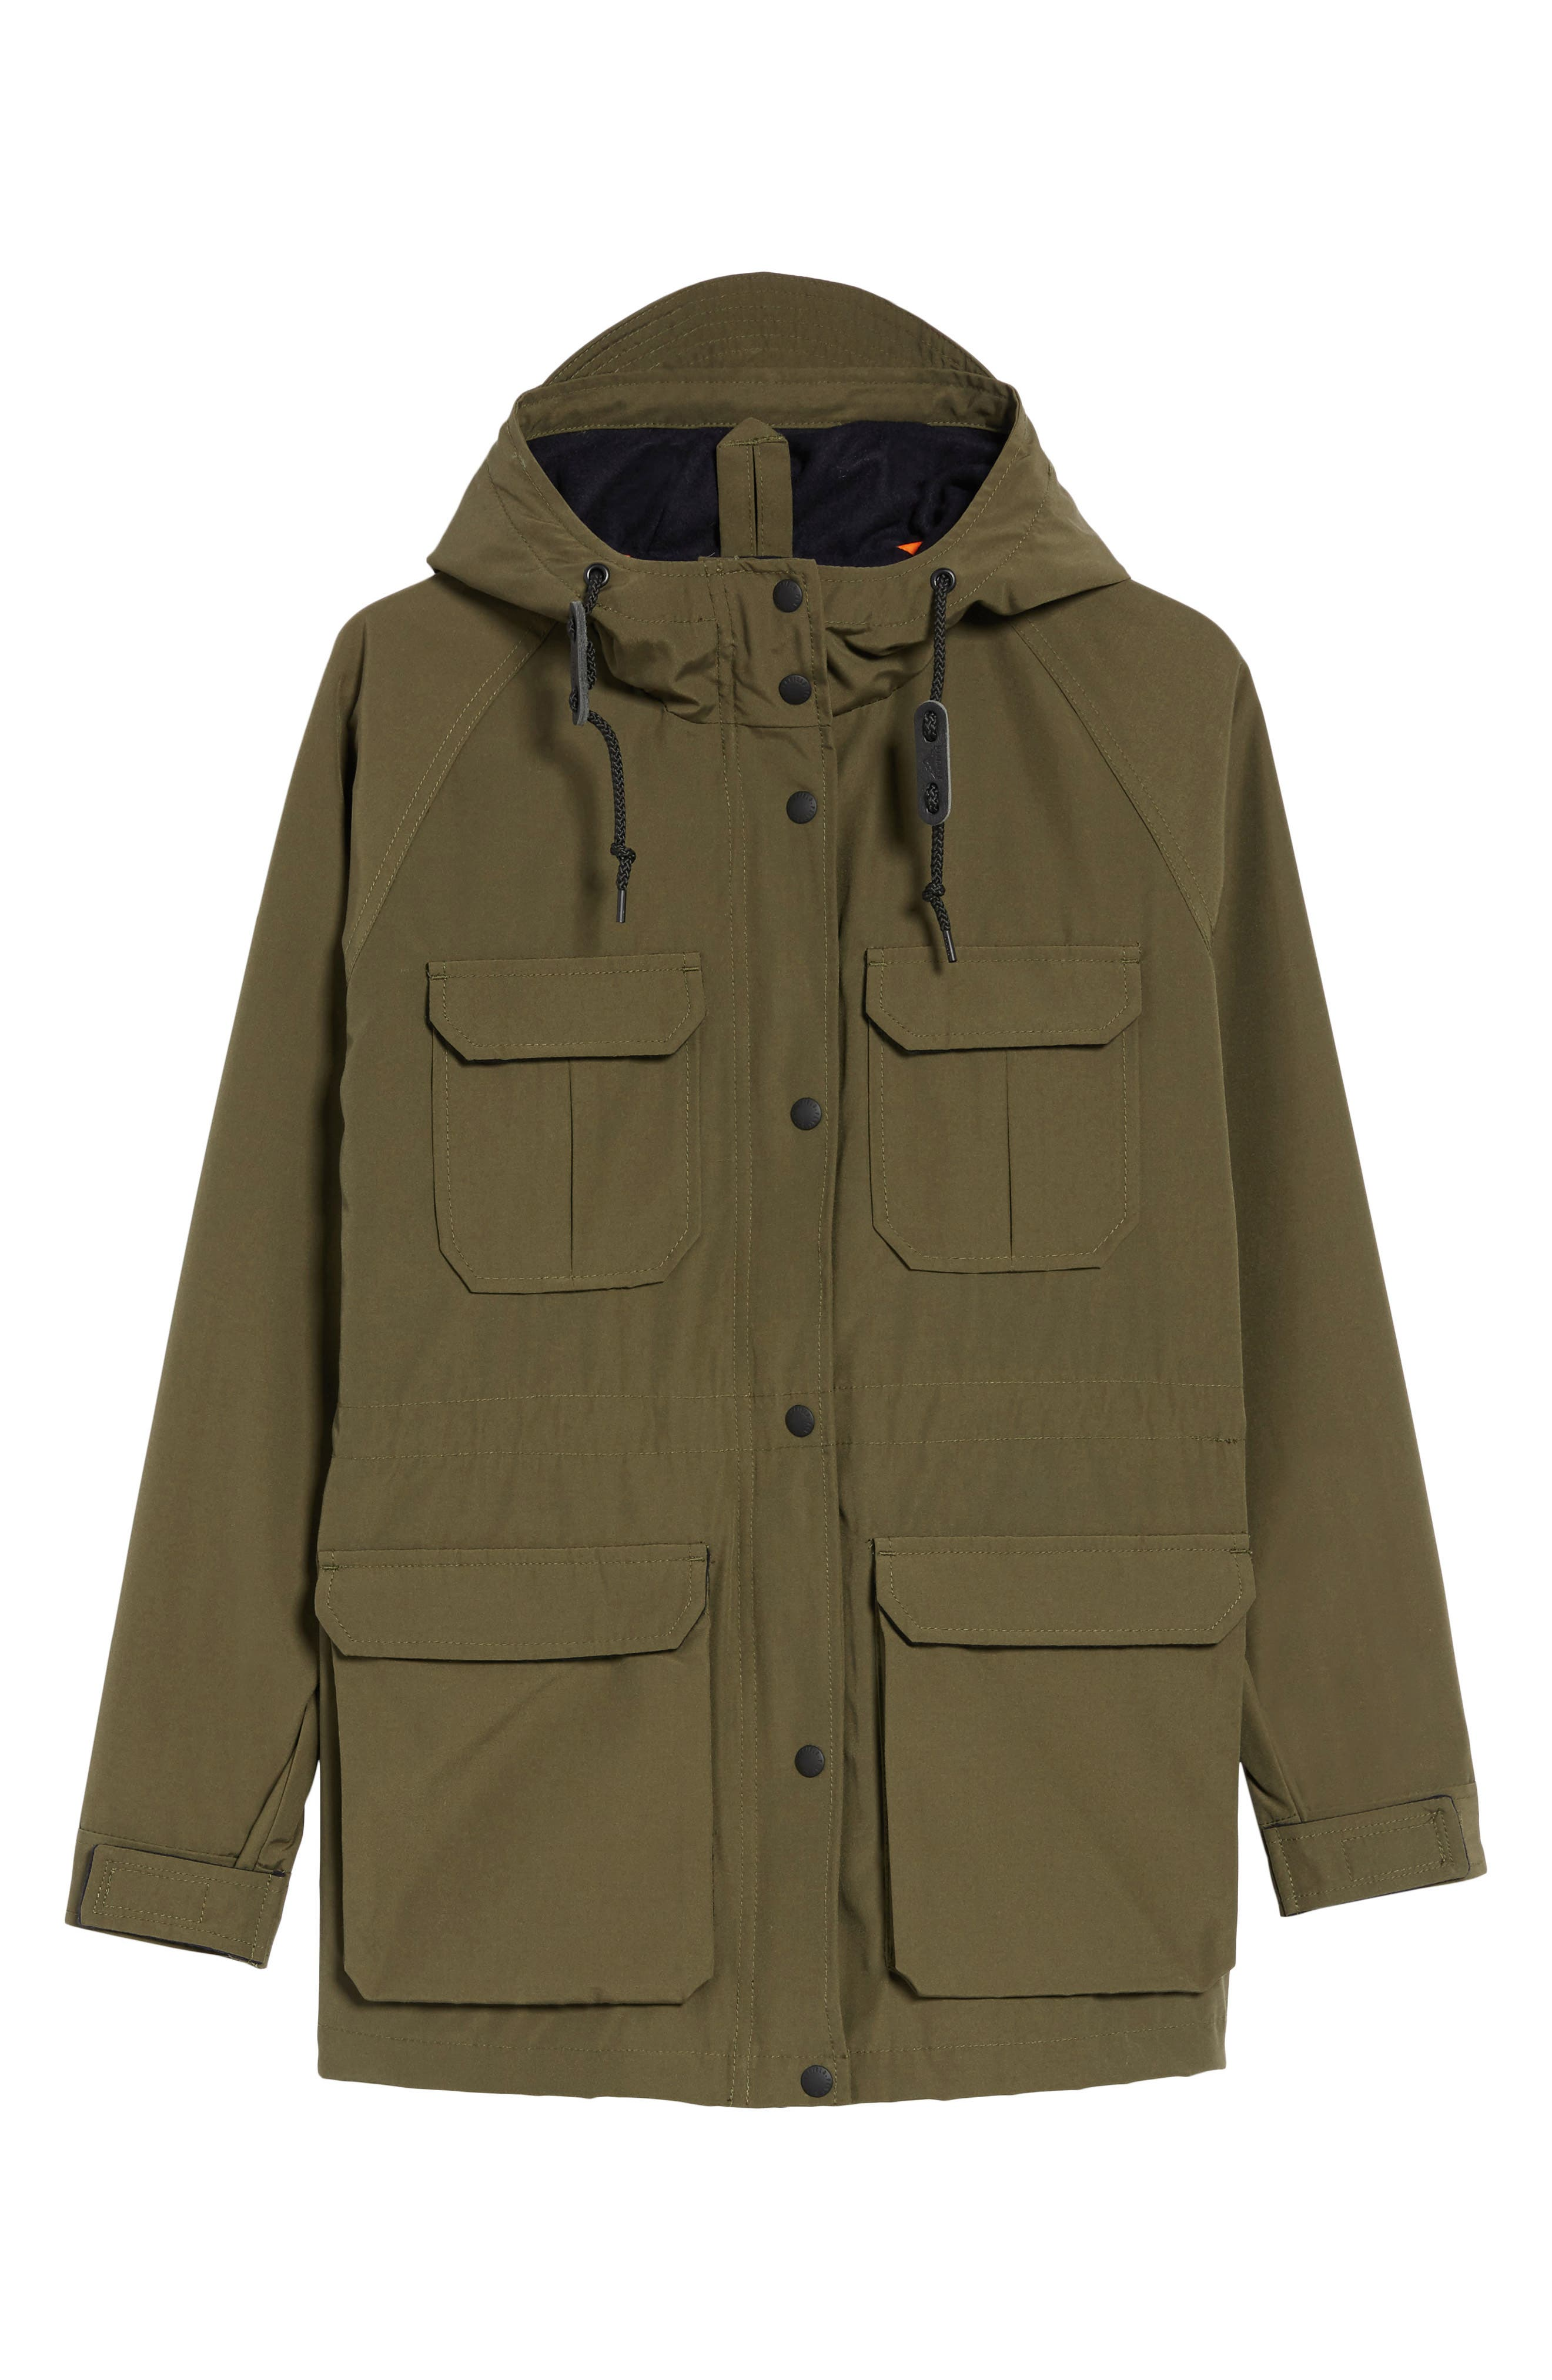 PENFIELD,                             'Kasson' Double Layer Mountain Parka,                             Alternate thumbnail 5, color,                             307